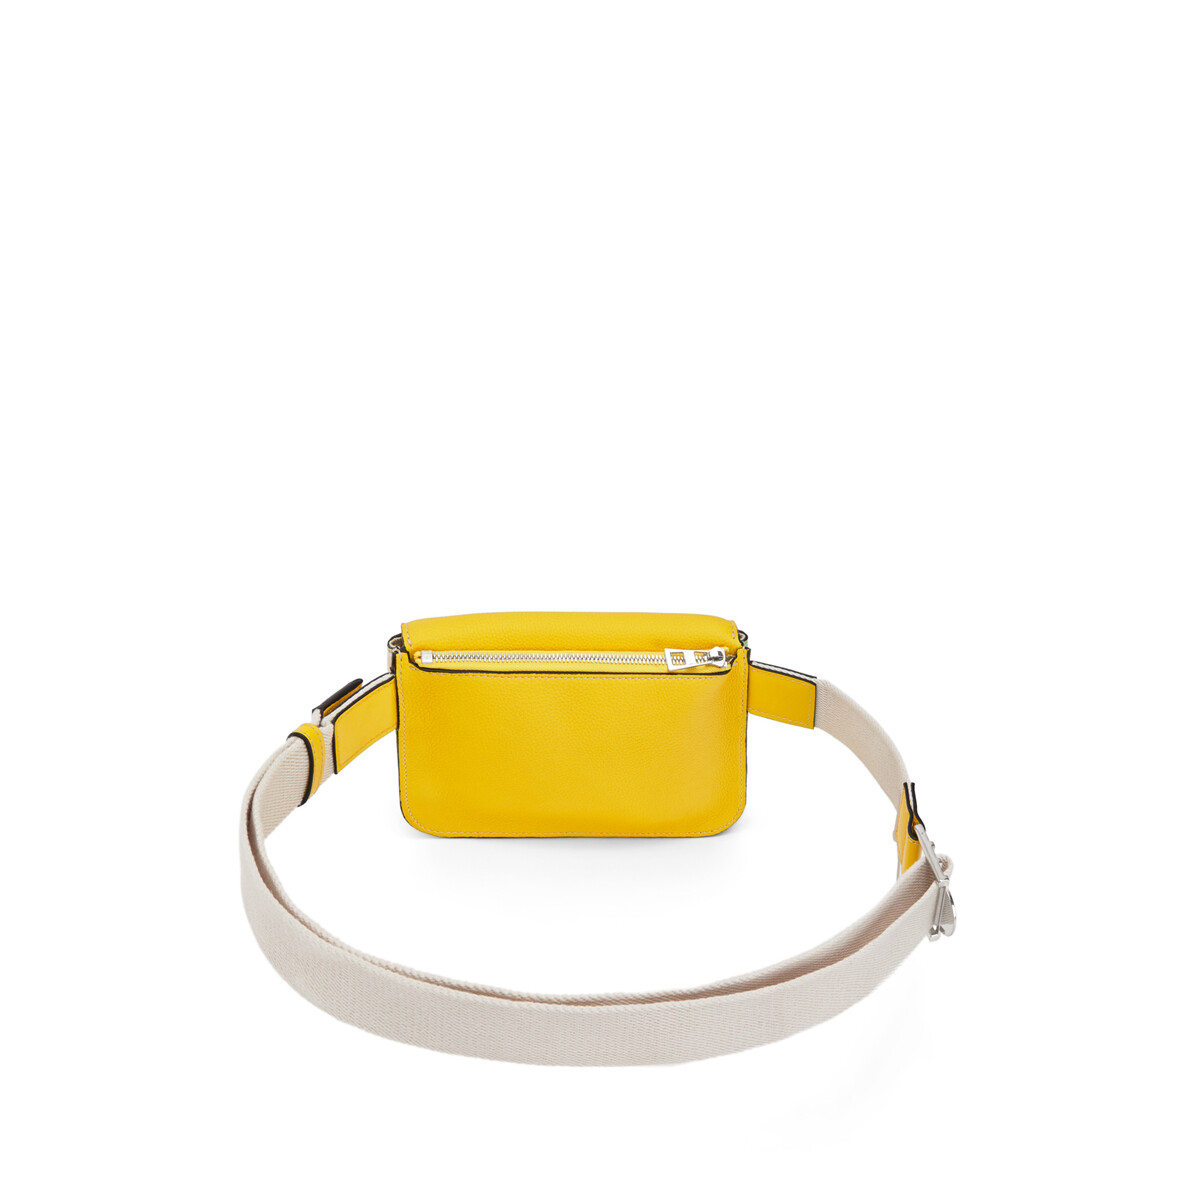 LOEWE Military Stripes Bumbag Yellow/Multicolour front